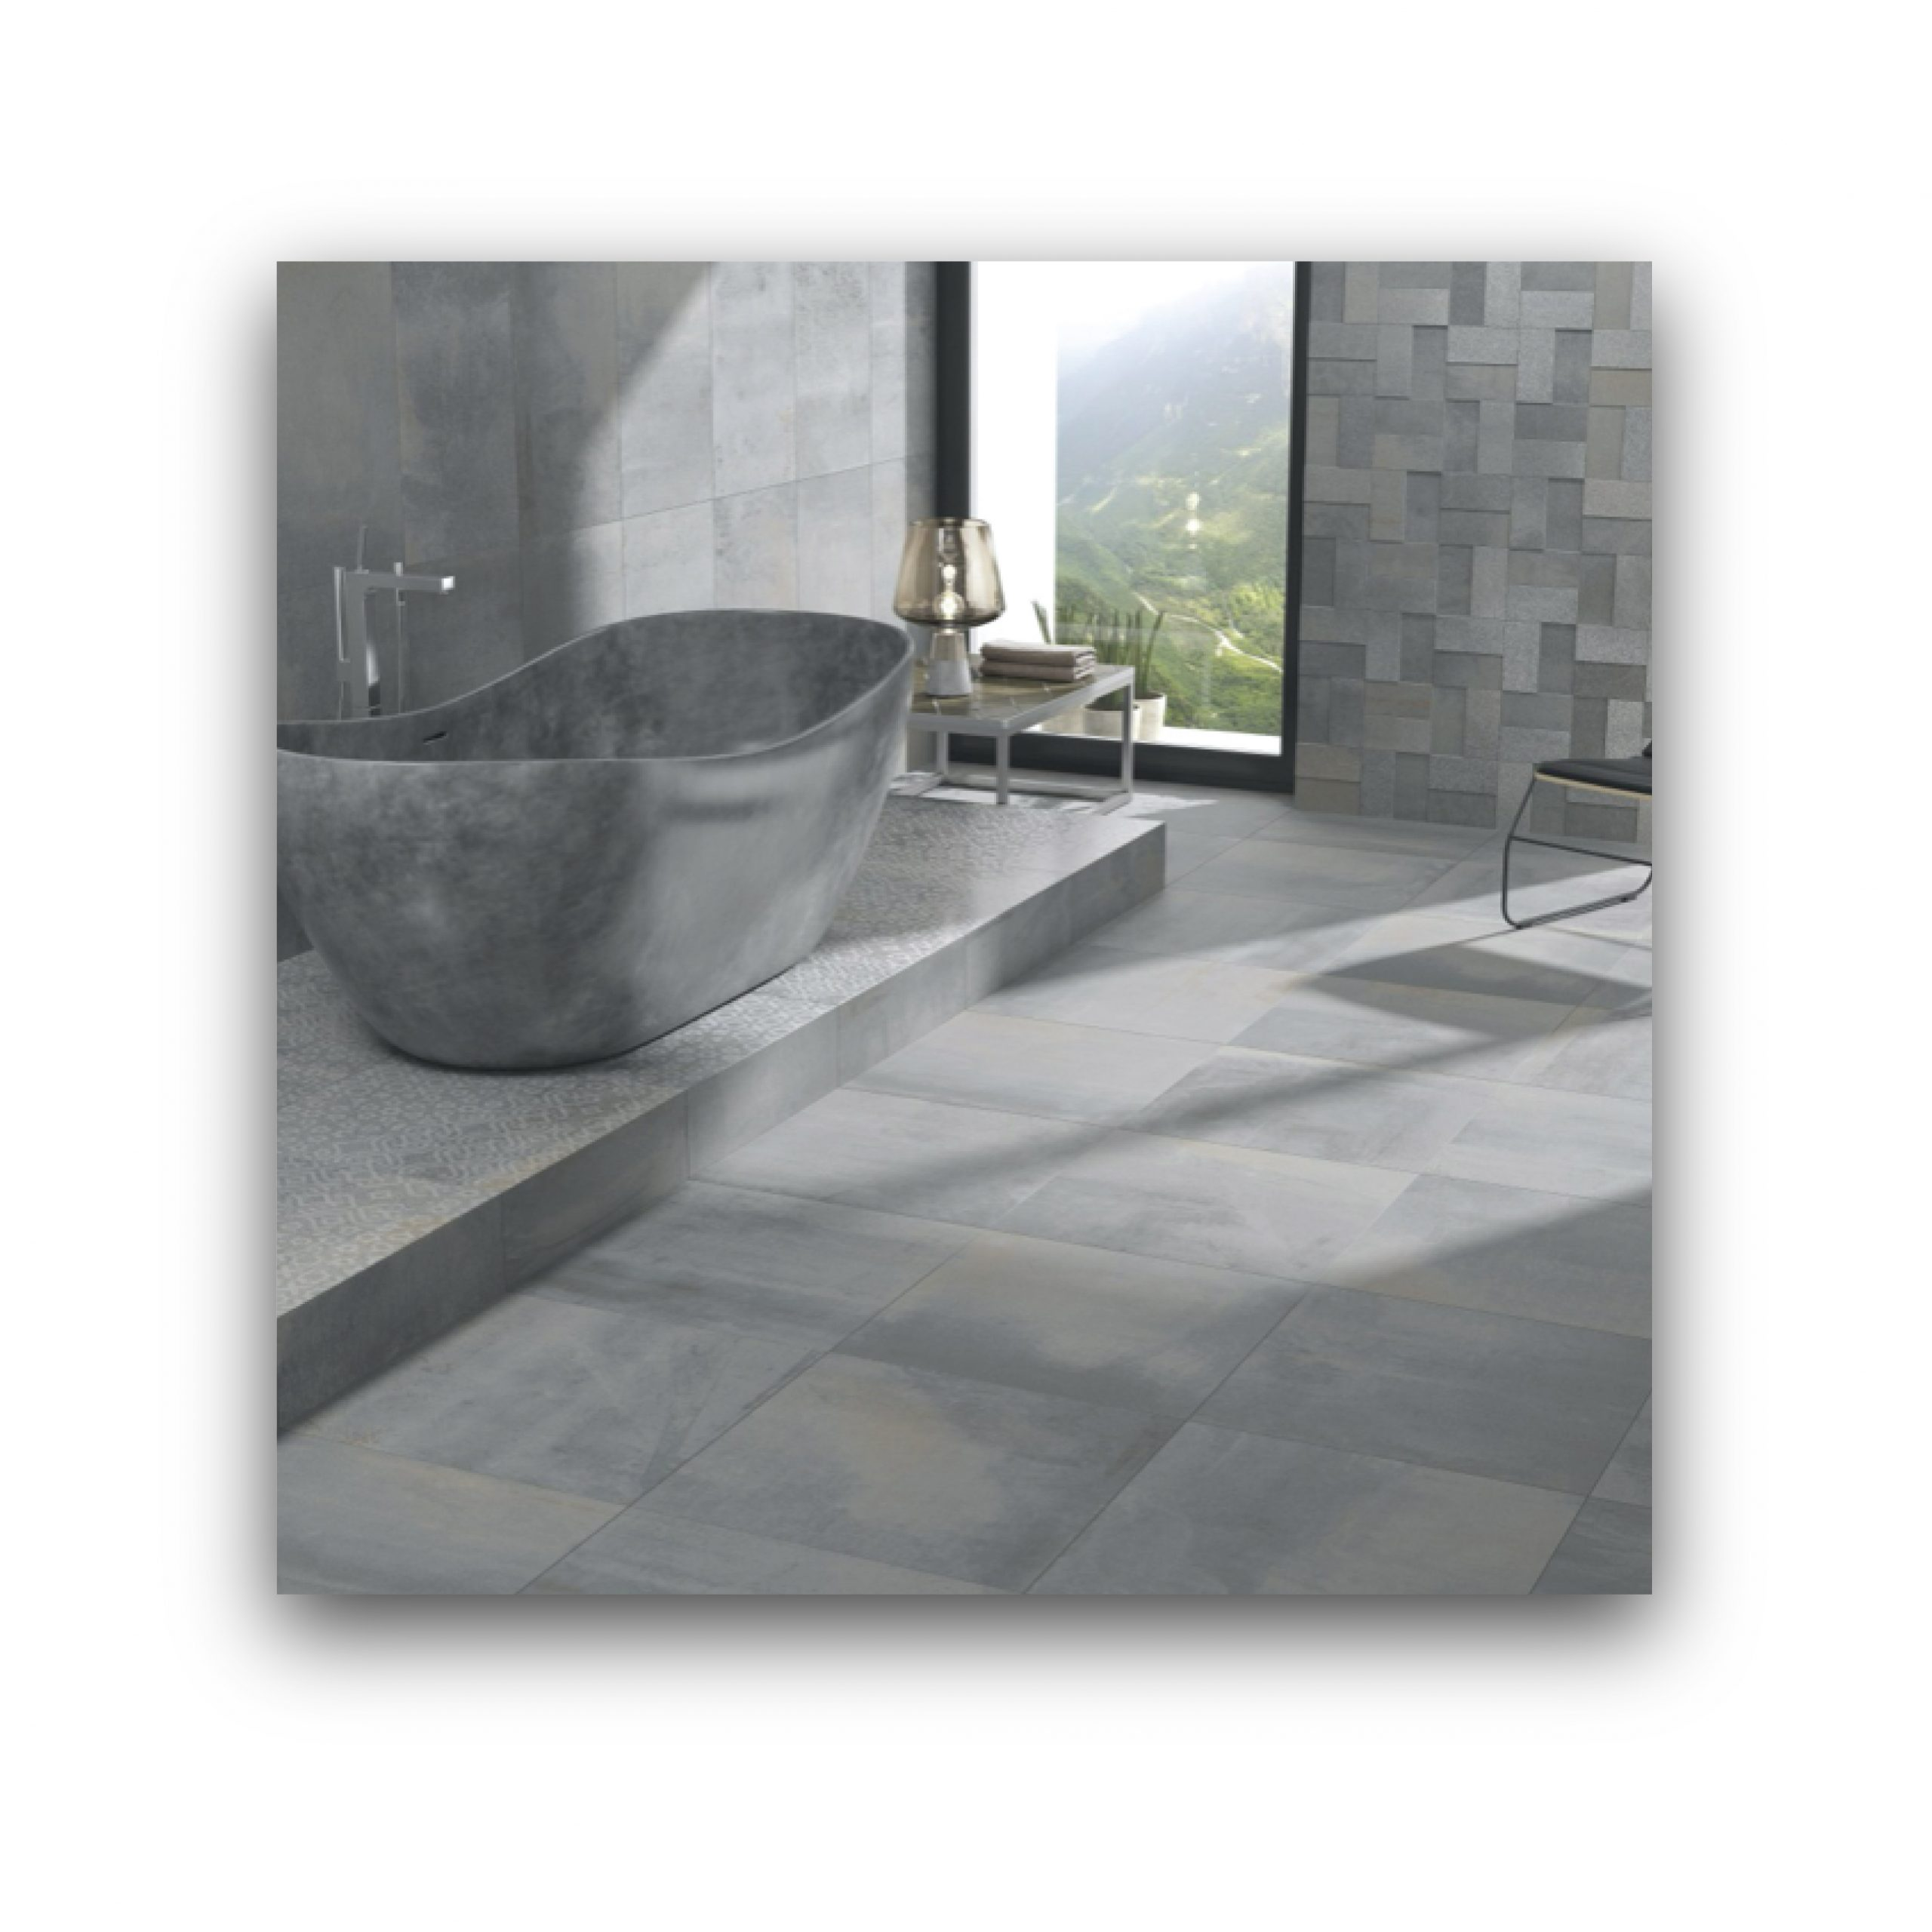 All Natural Stone Stock Material, All Natural Stone Stock Porcelain, Vulcano